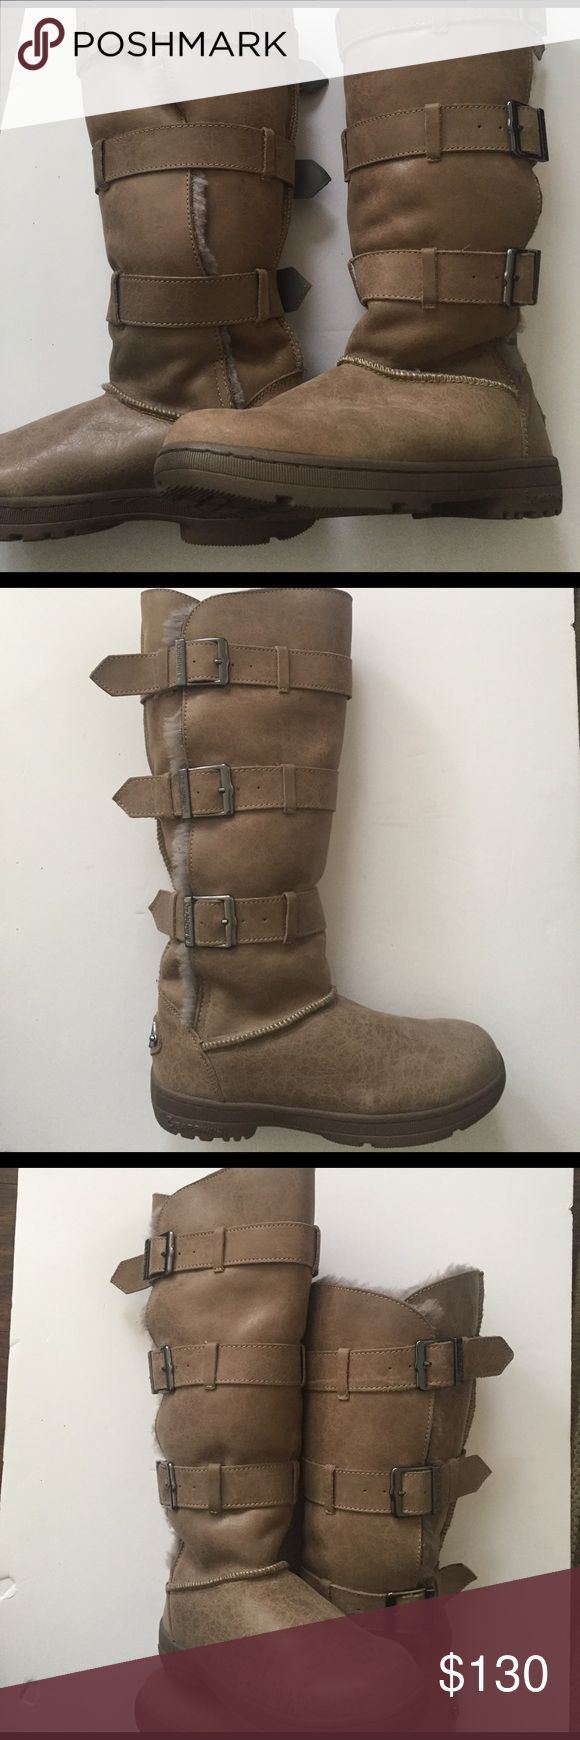 Bearpaw tall 3 buckle leather boots new Leather upper, wool lined, new without box BearPaw Shoes Winter & Rain Boots